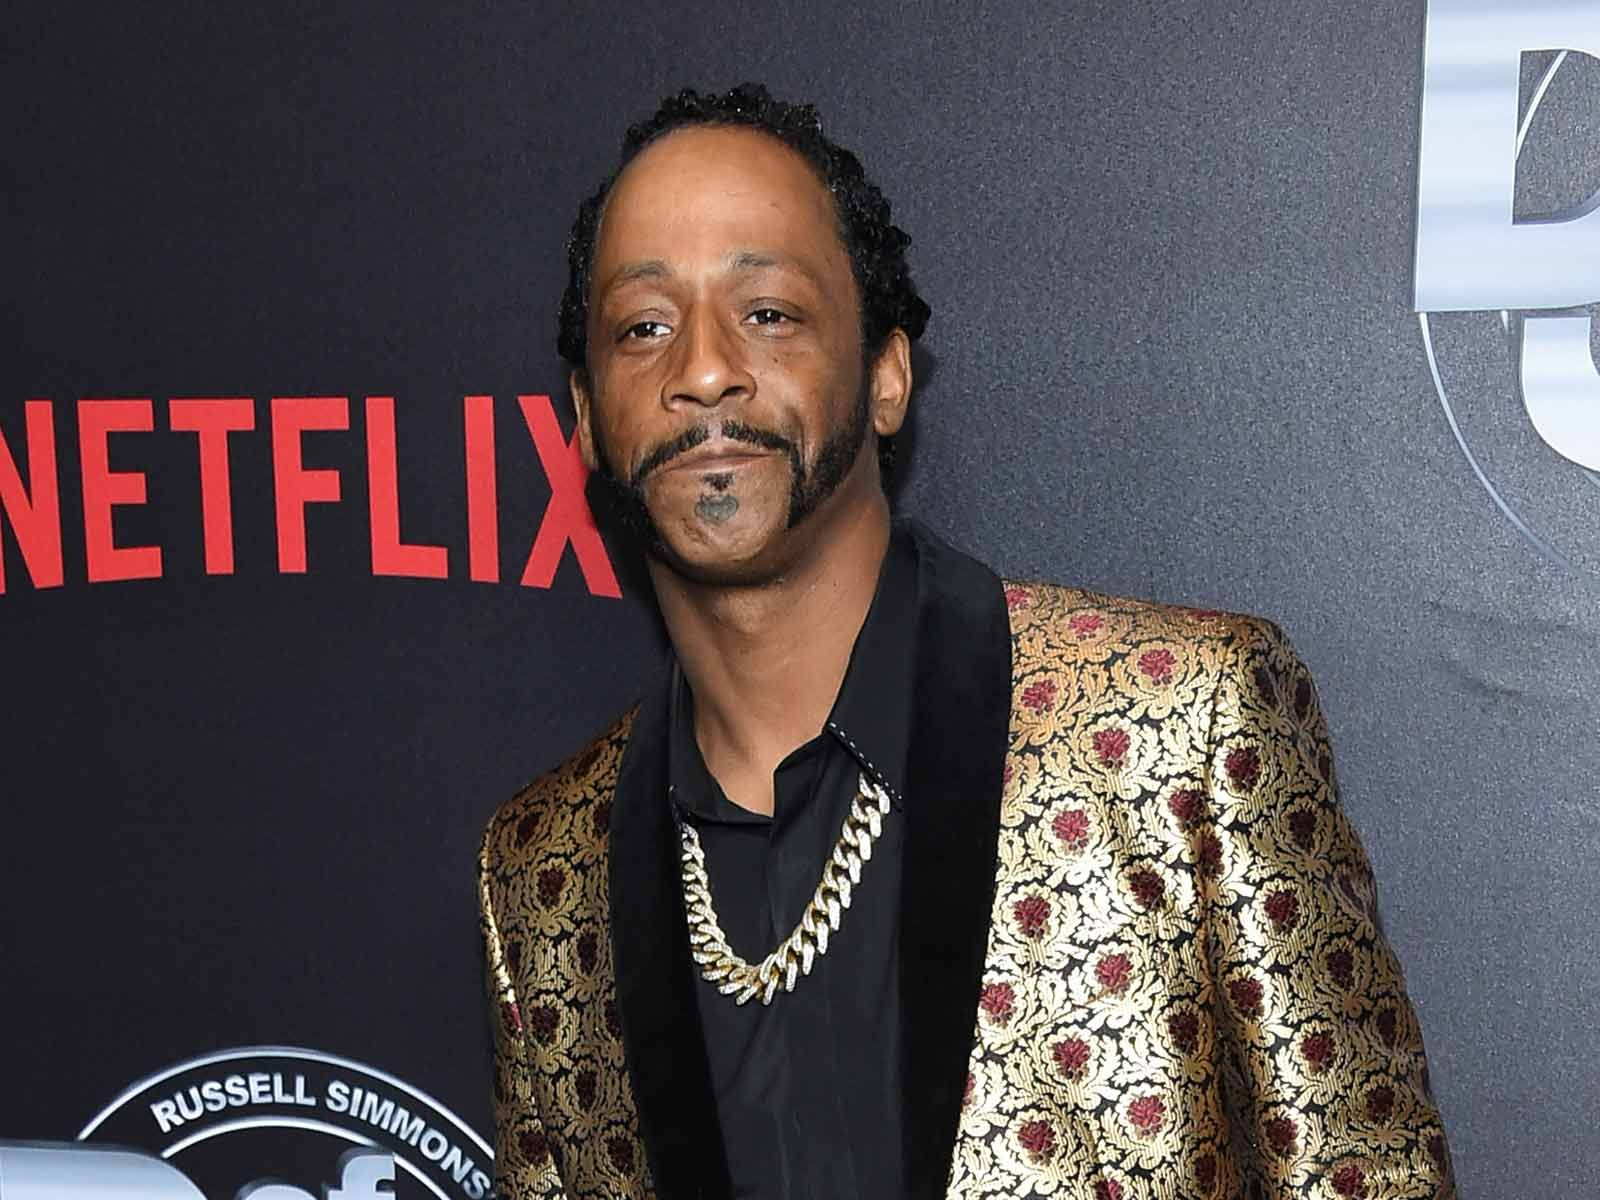 How tall is Katt Williams?